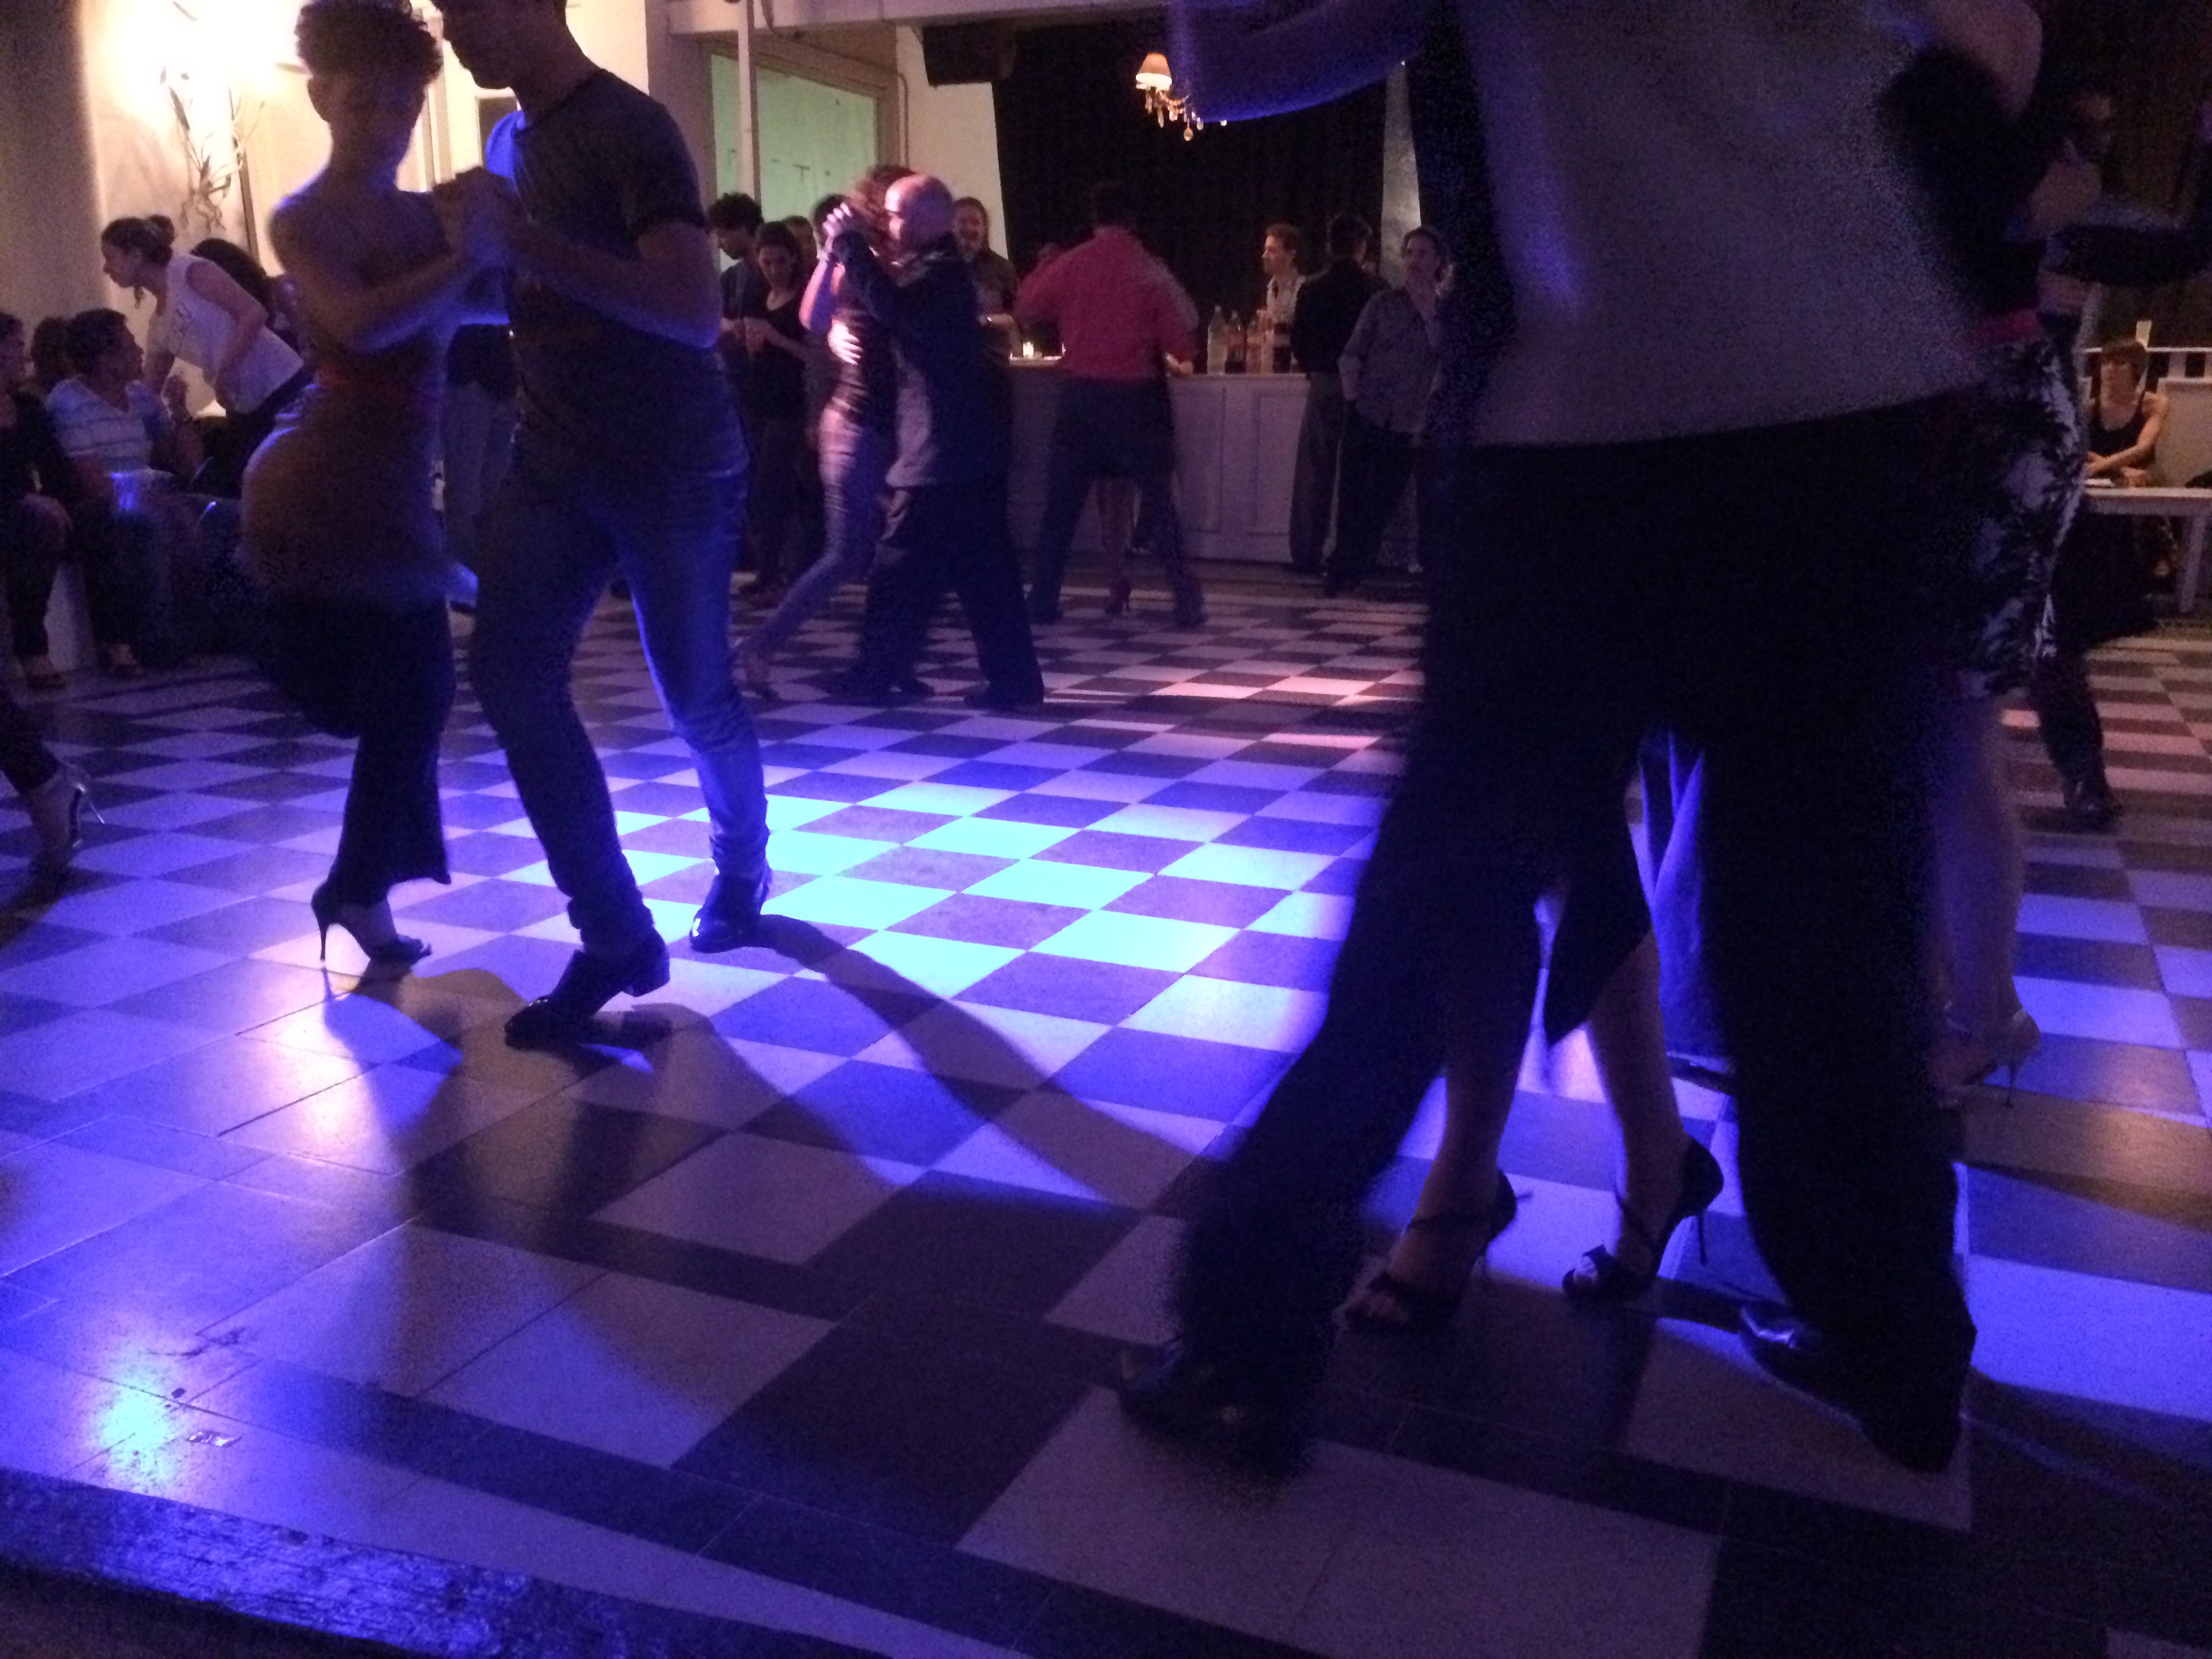 People dancing at a milonga in Palermo, Buenos Aires